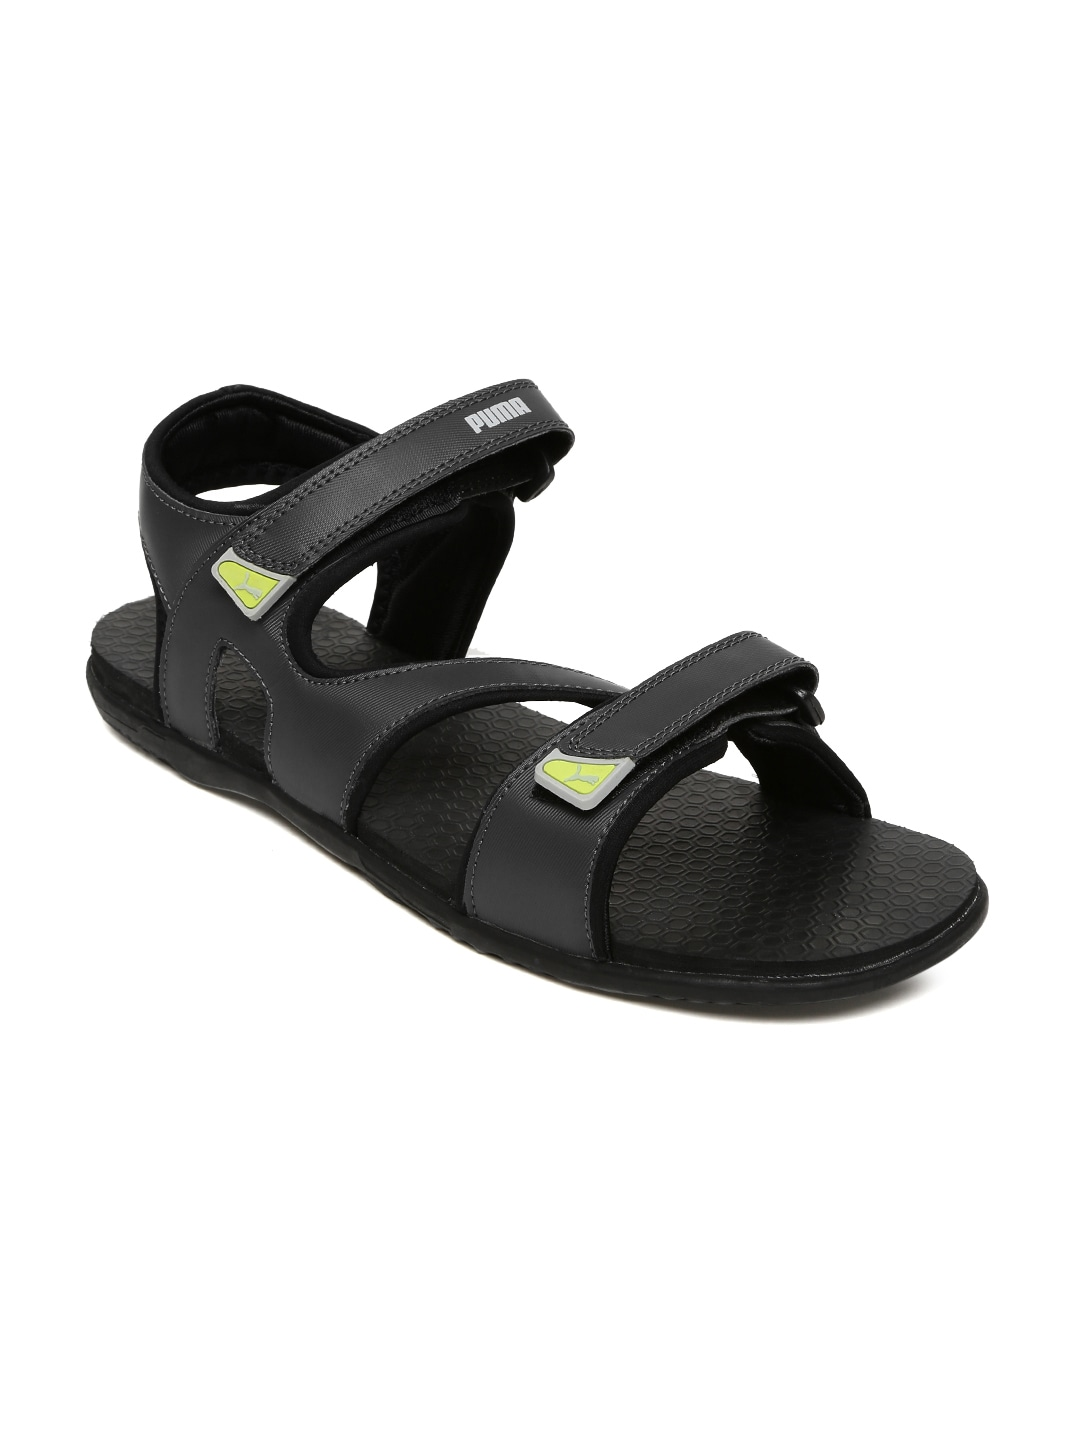 Puma men grey black elego idp colourblocked sports sandals